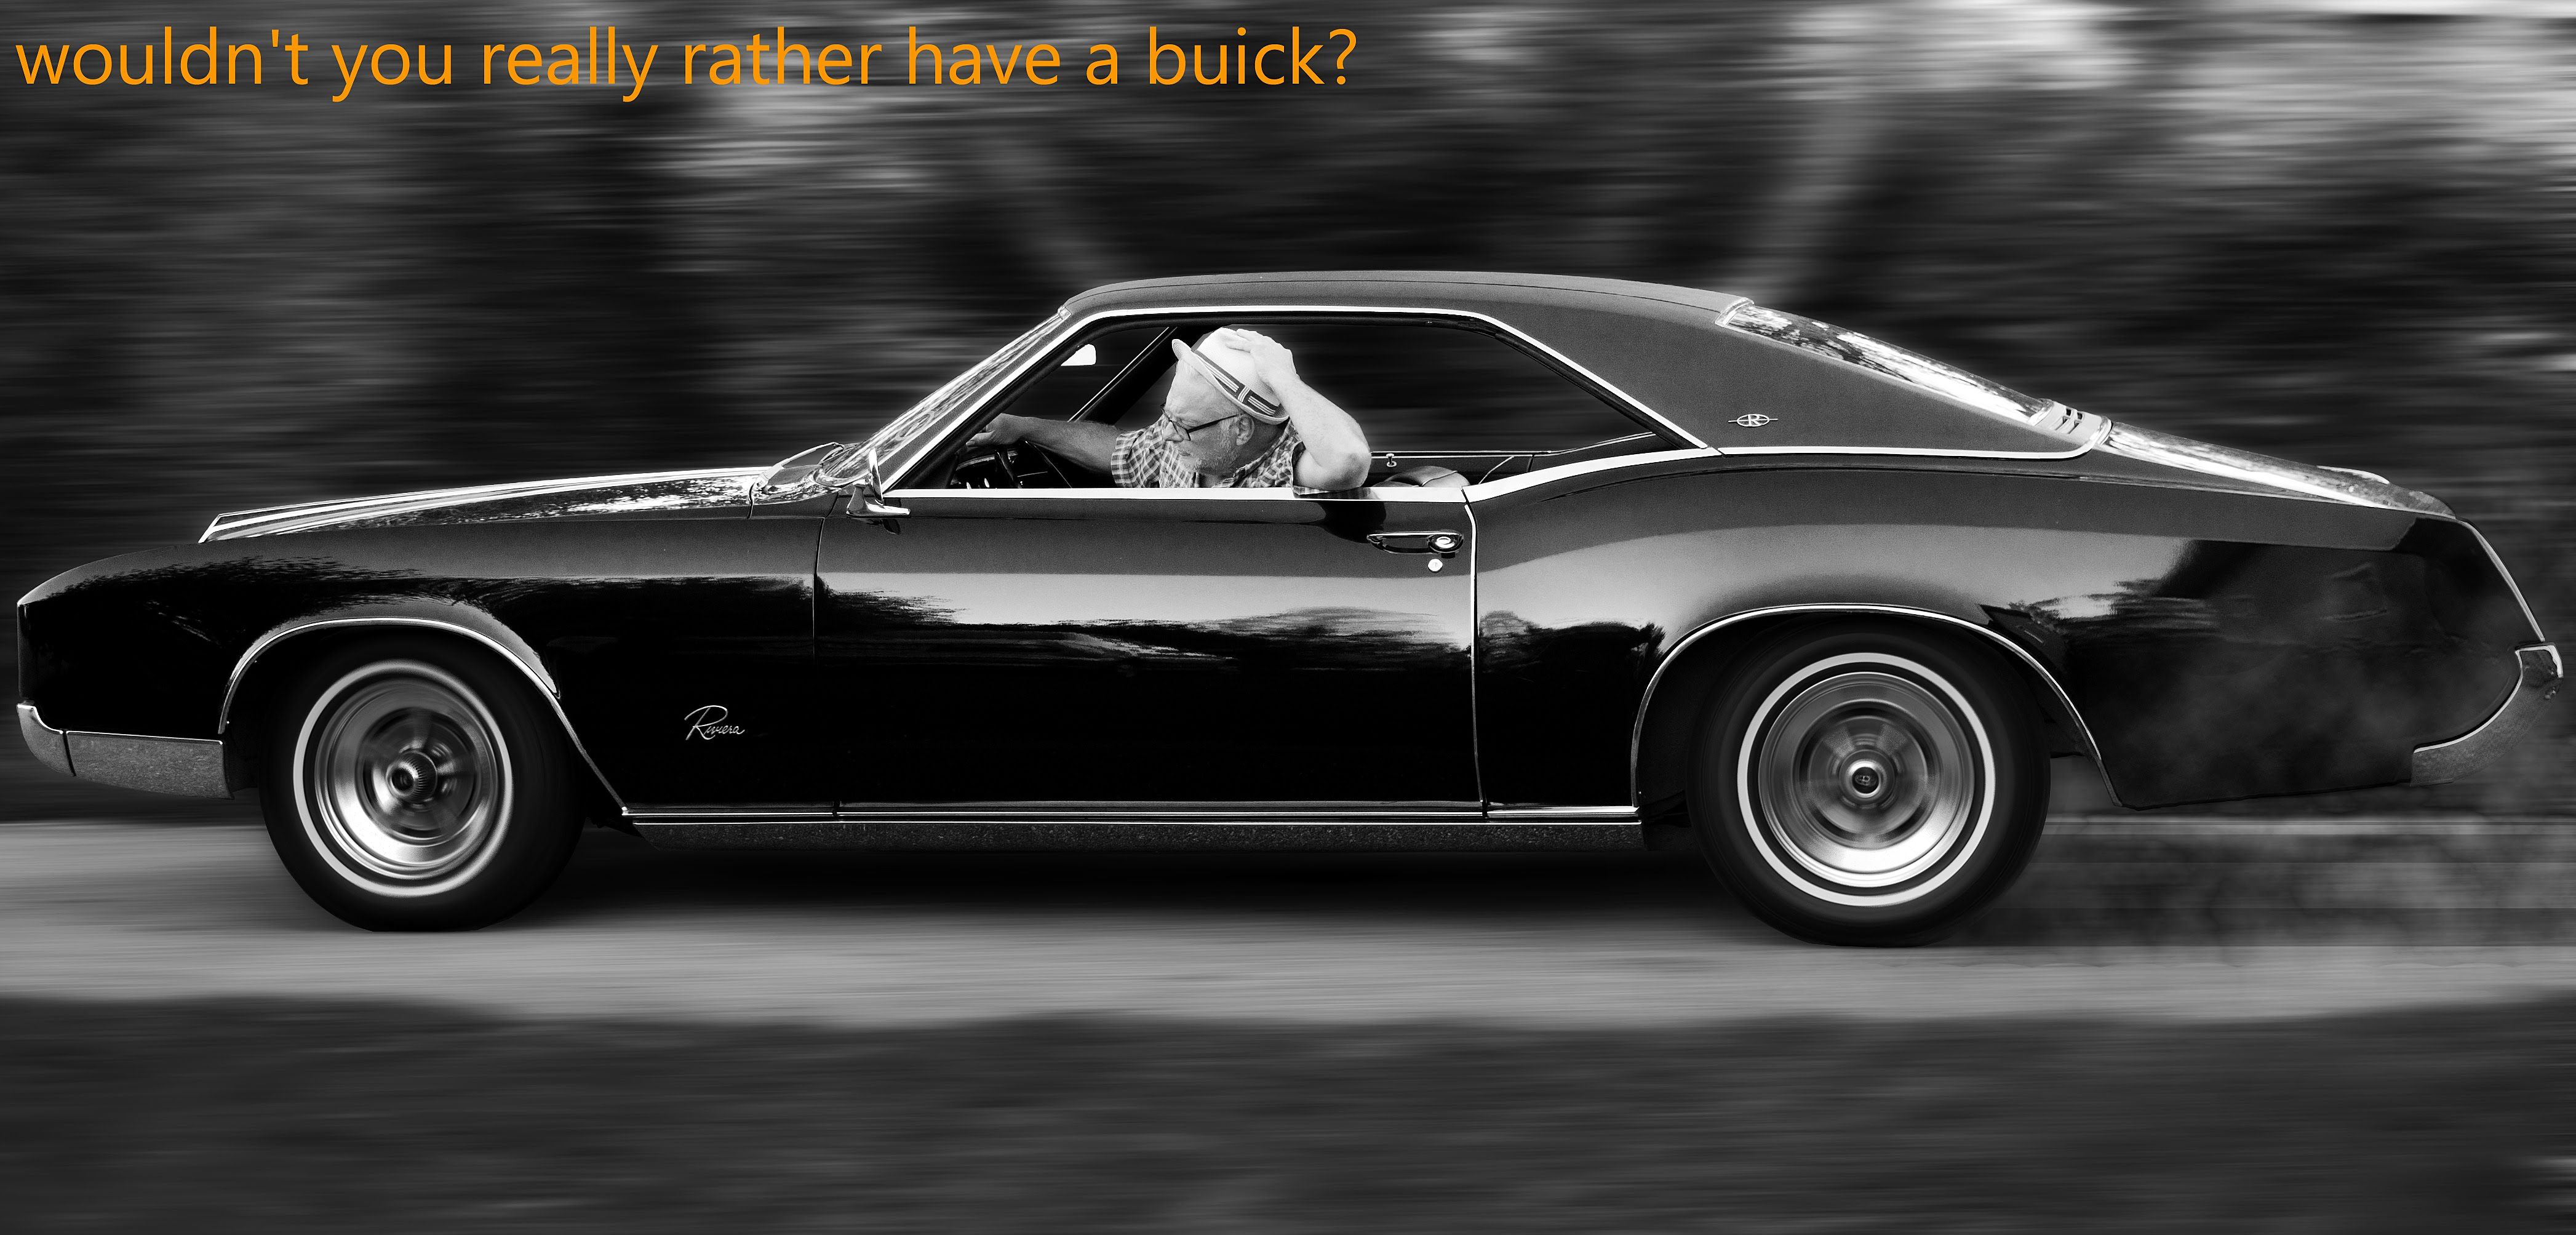 Images of 1967 Buick Riviera   4187x2007